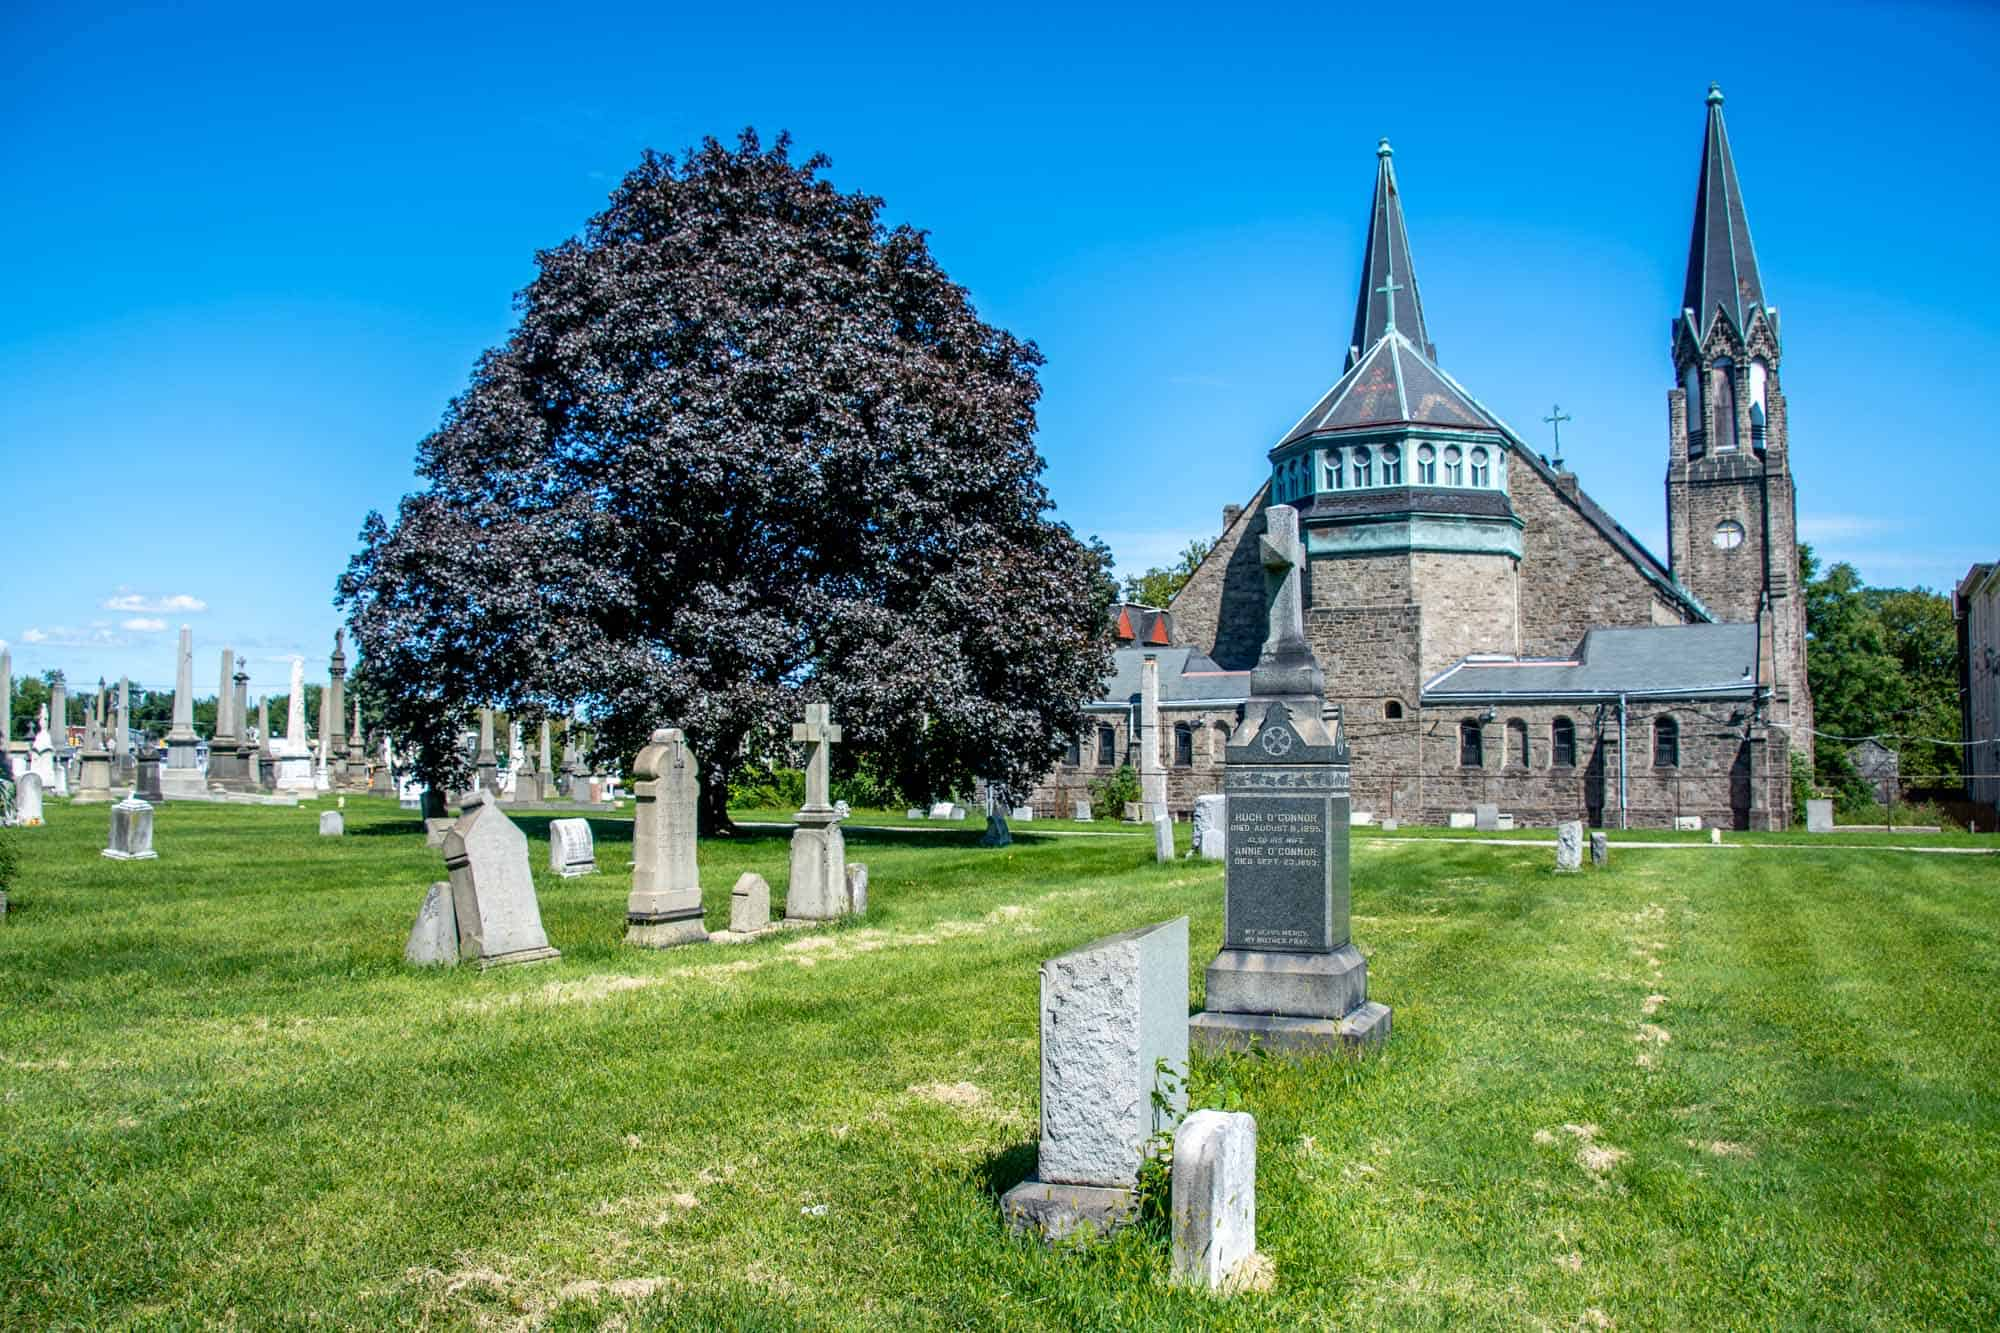 Tombstones in cemetery with church with twin spires beyond